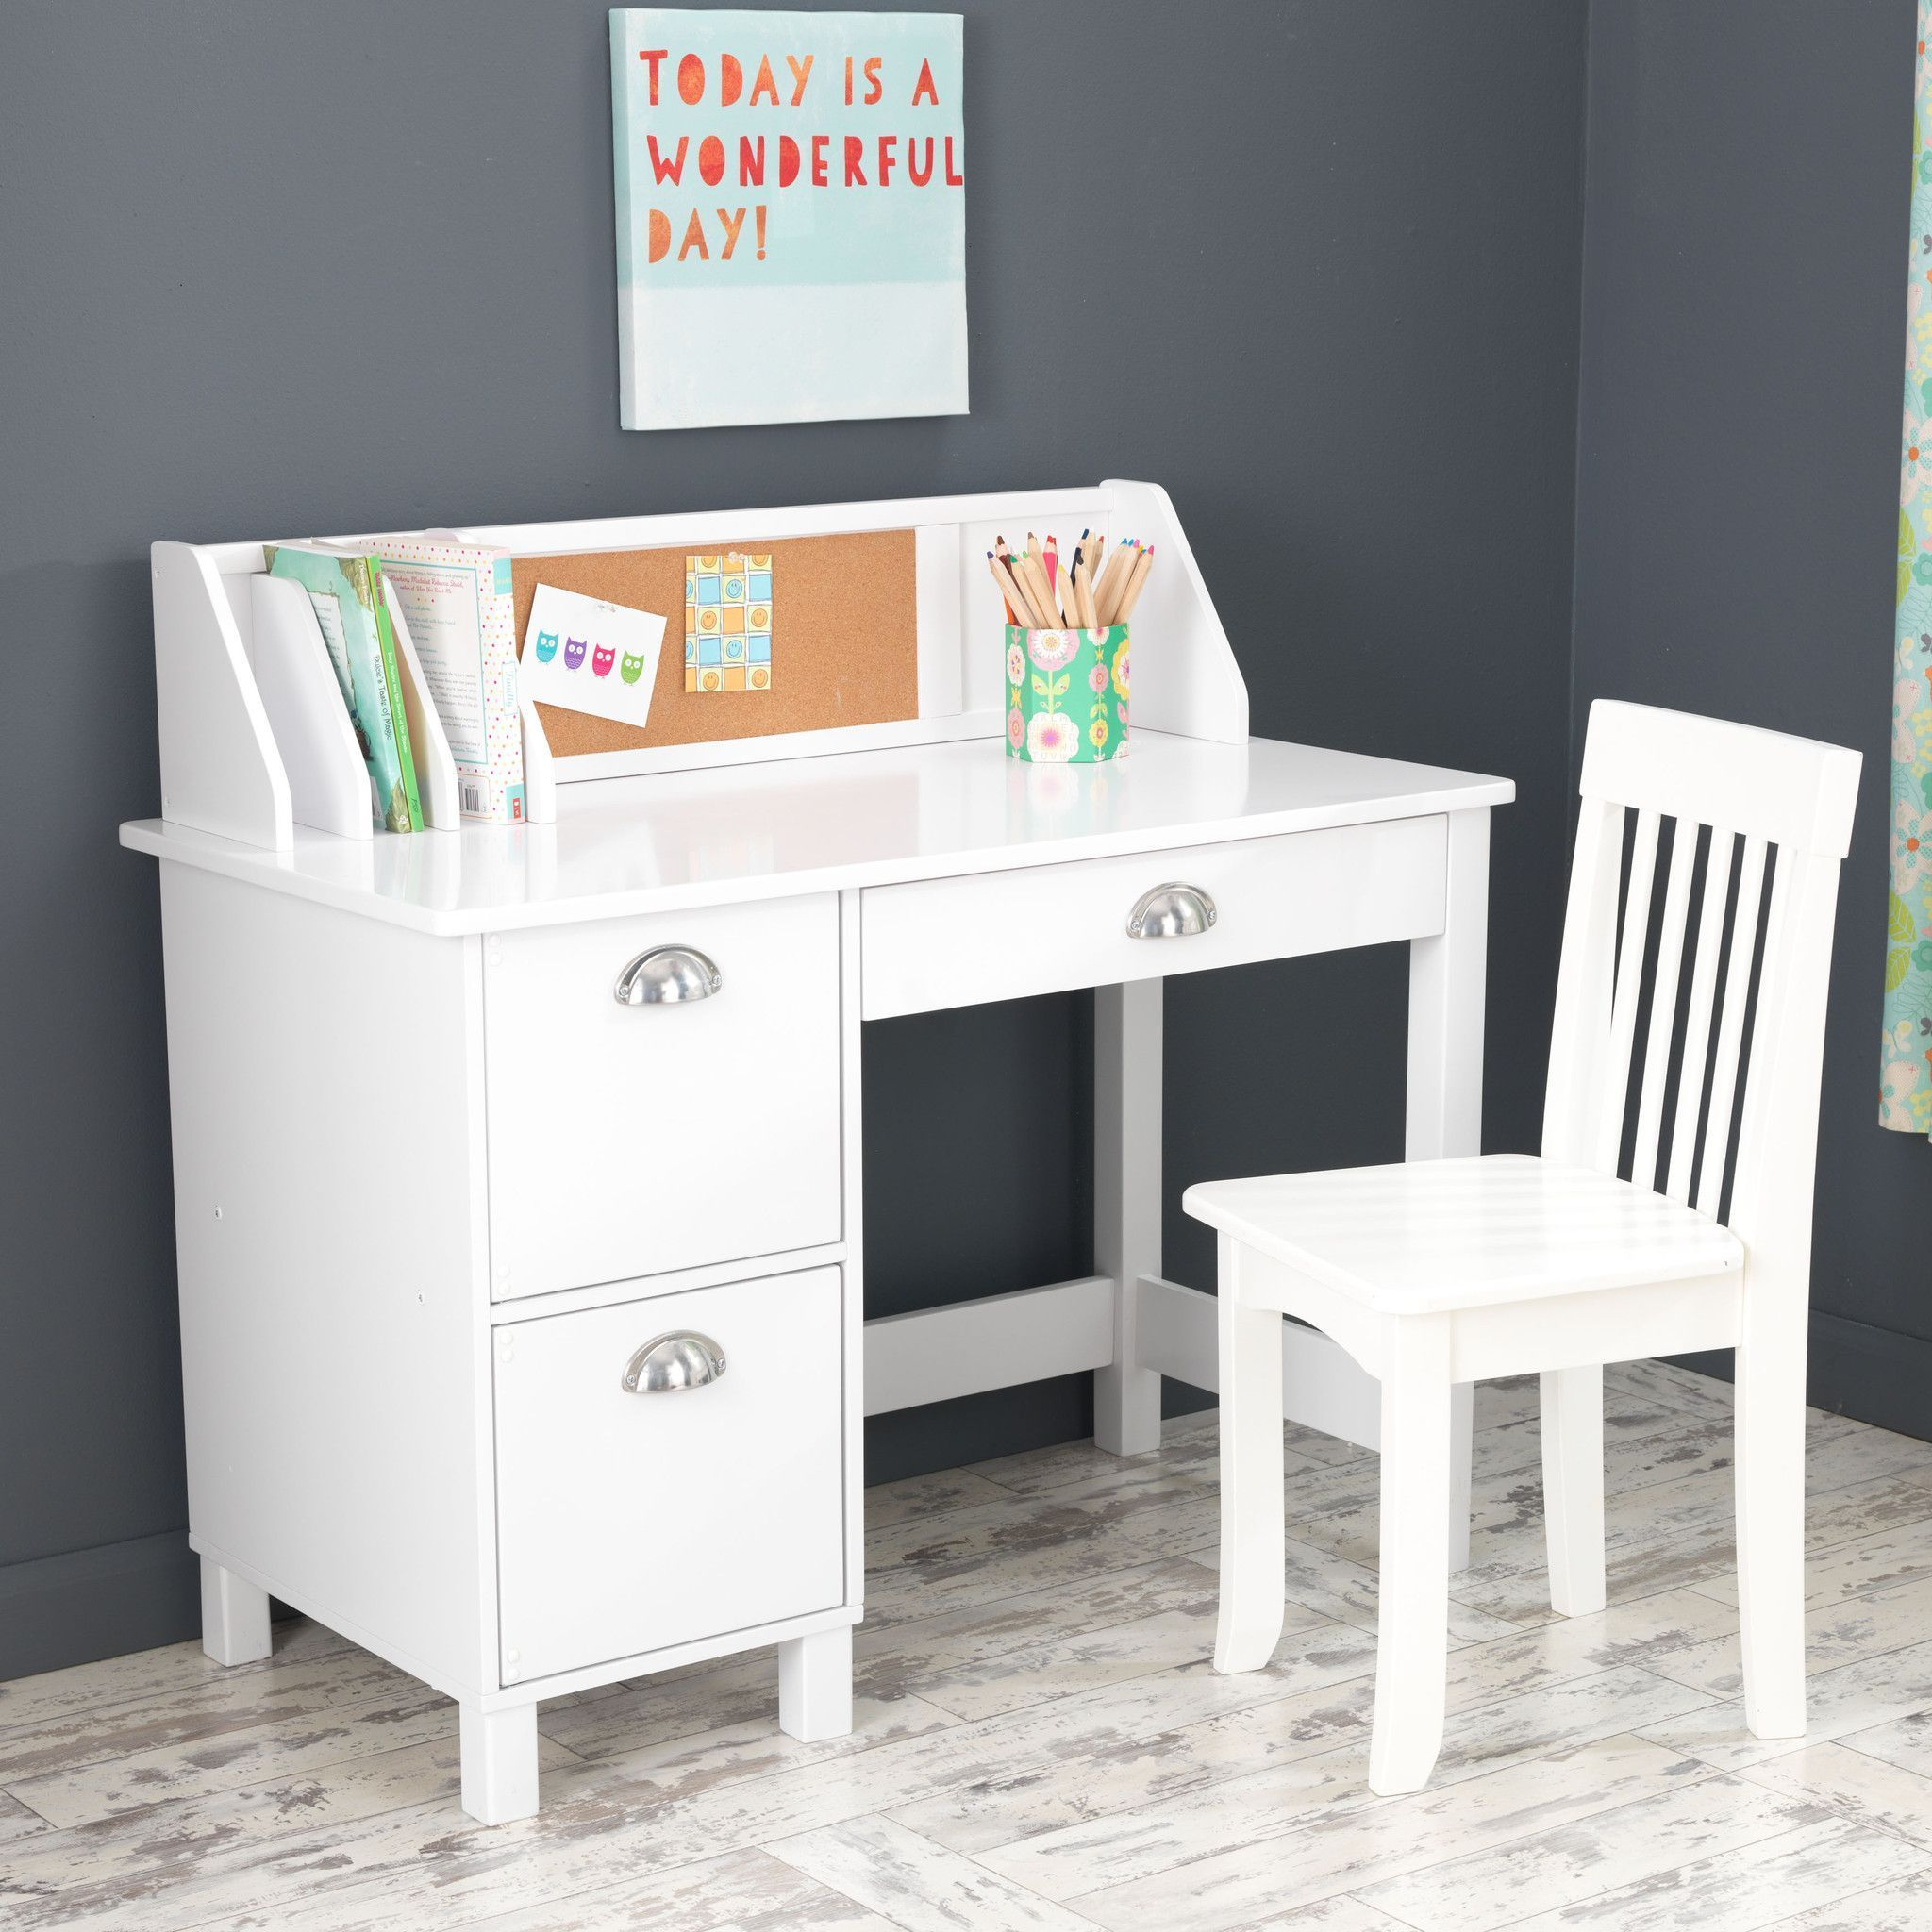 Kid Kraft Study Desk With Drawers White 26704 Ikearugs Kids Study Desk White Study Desk Desk With Drawers